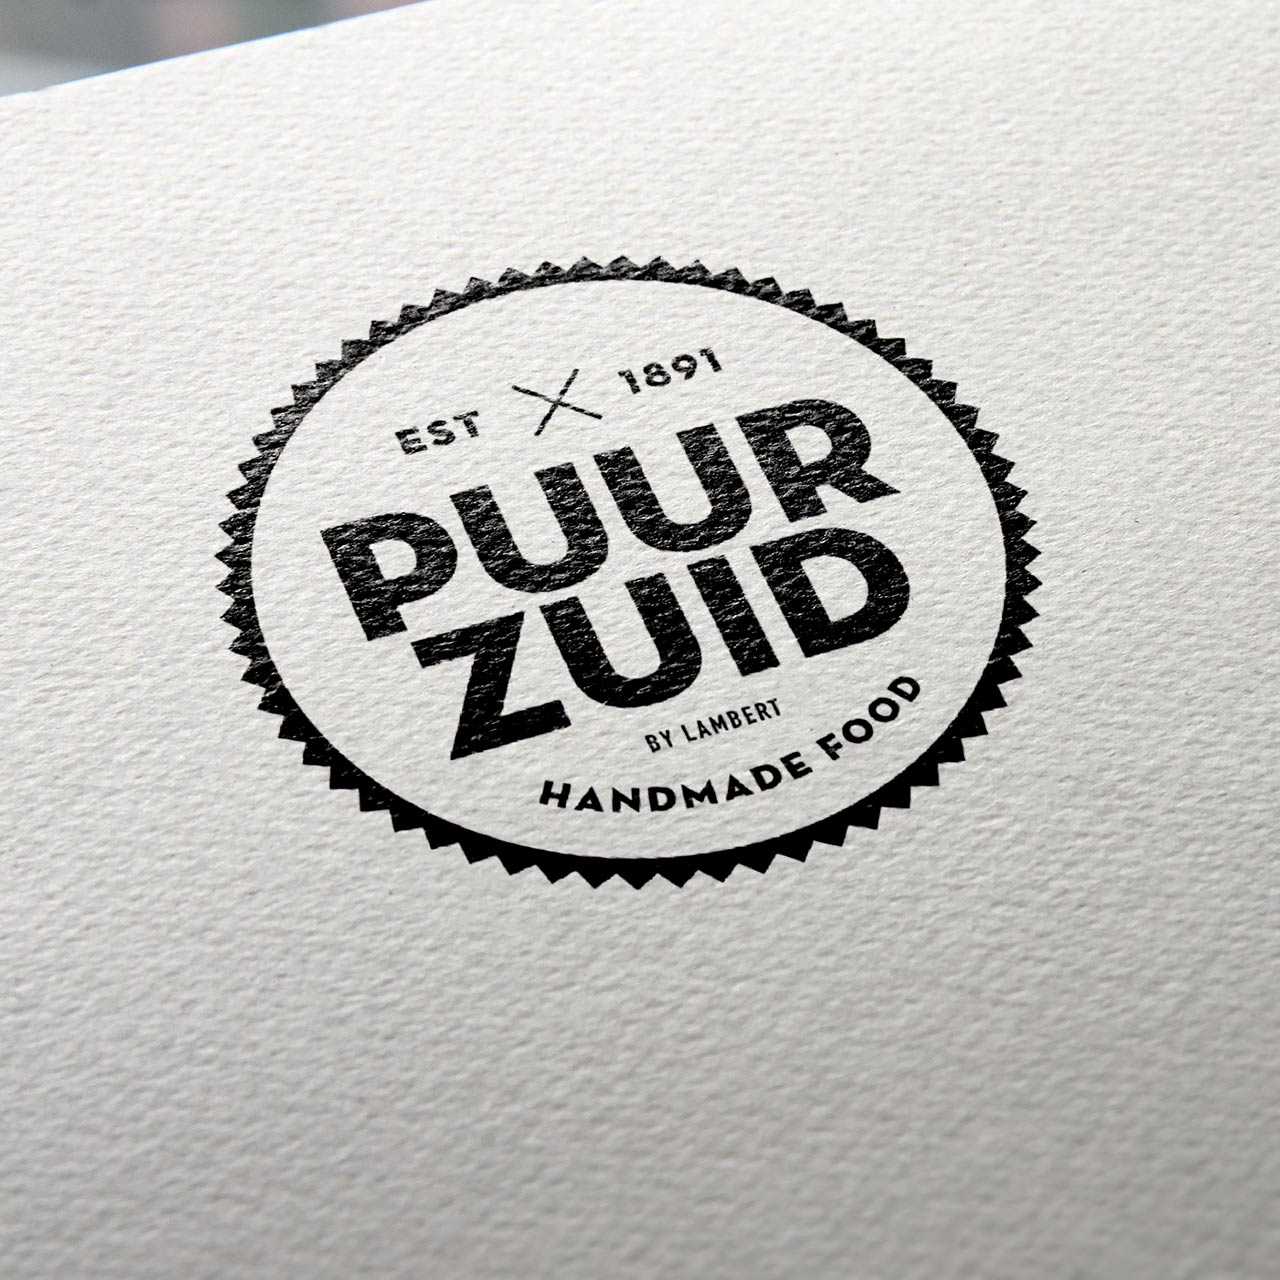 Natural-Paper-Printed-Logo—Puur-Zuid2